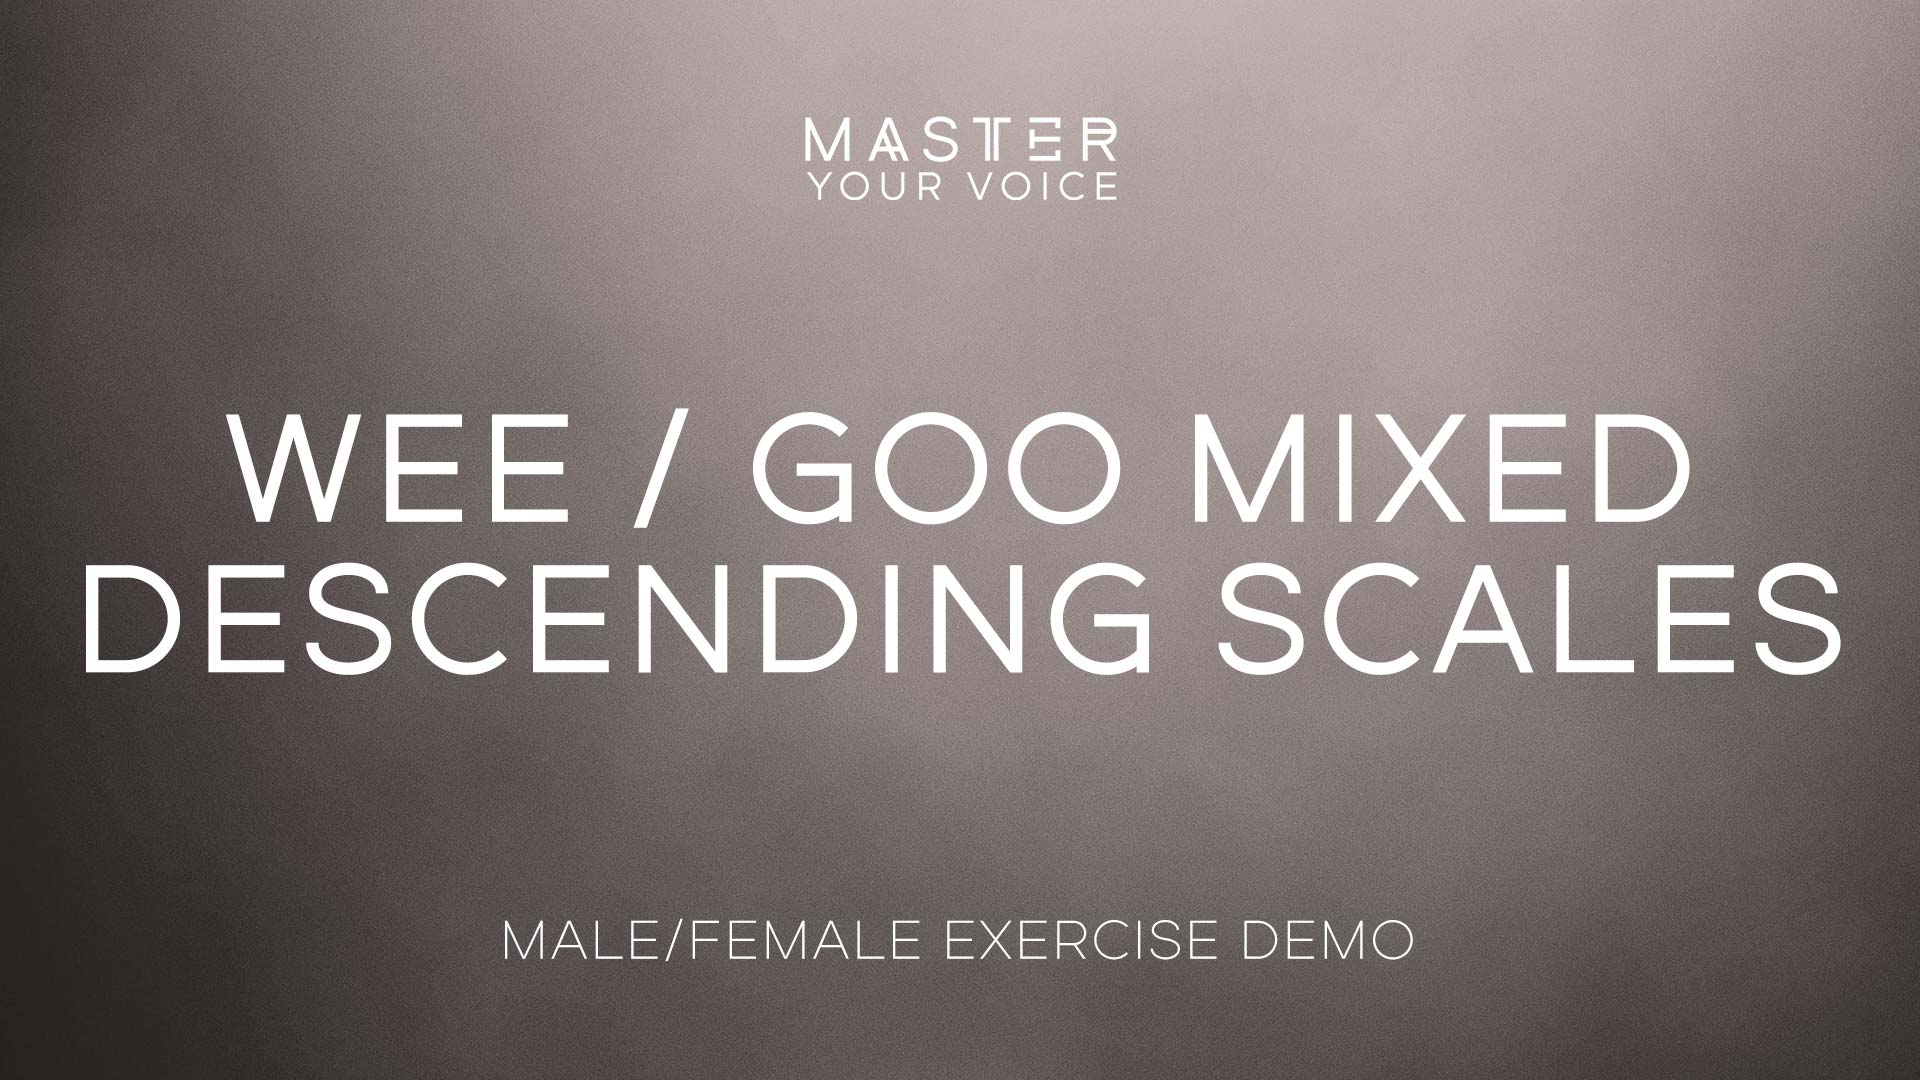 Wee / Goo Mixed Descending Scales Exercise Demo